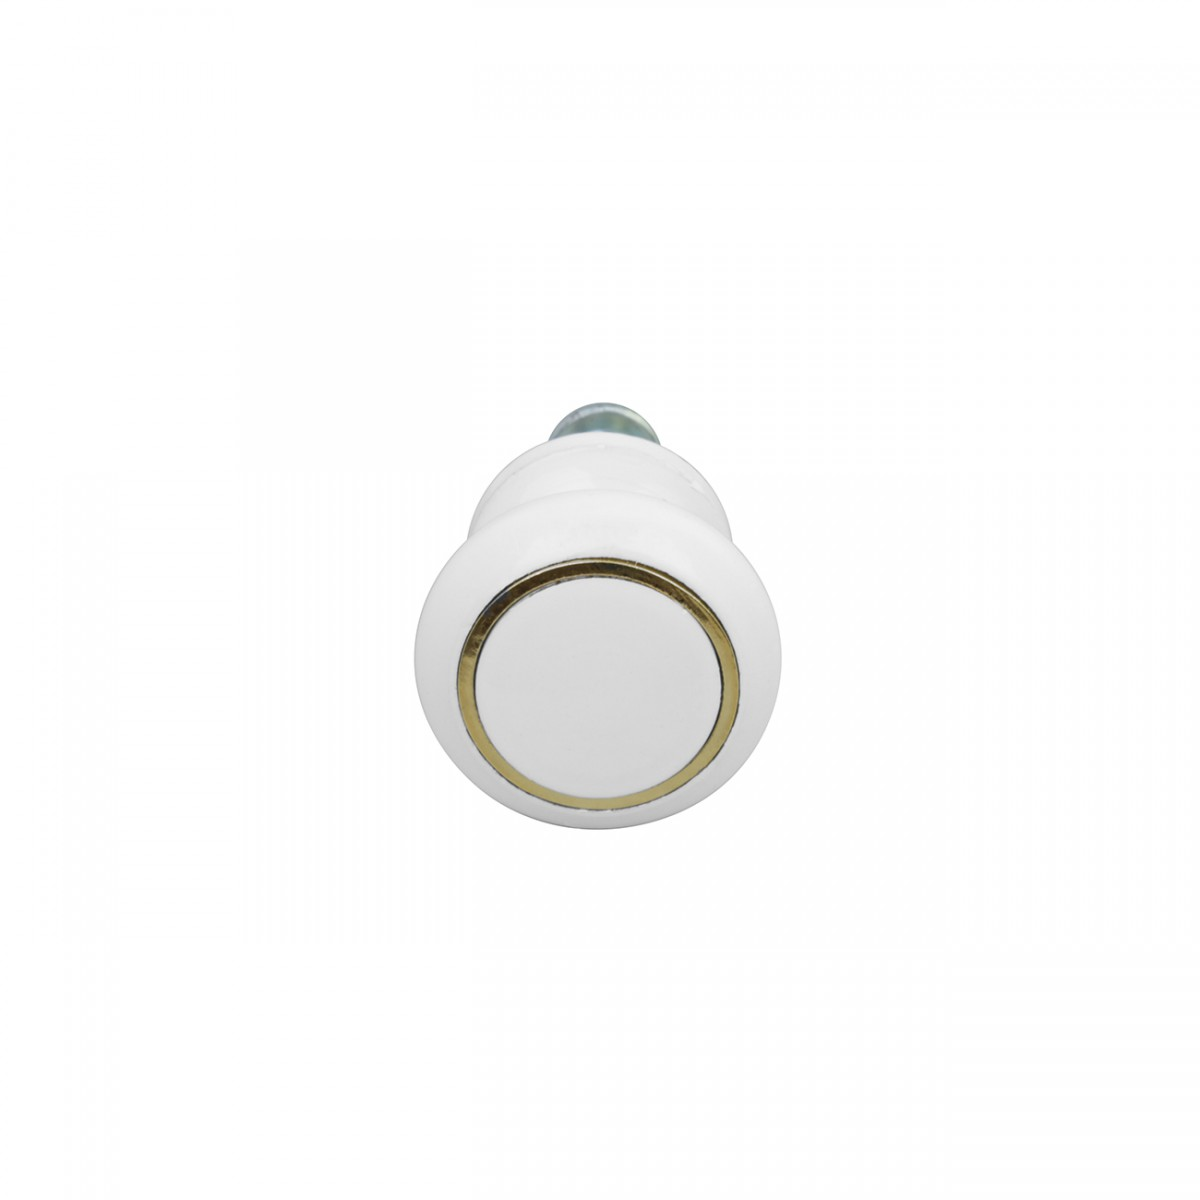 10 Cabinet Knobs White Solid Brass Ball 1 Dia Enamel Cabinet Hardware Cabinet Knobs Cabinet Knob